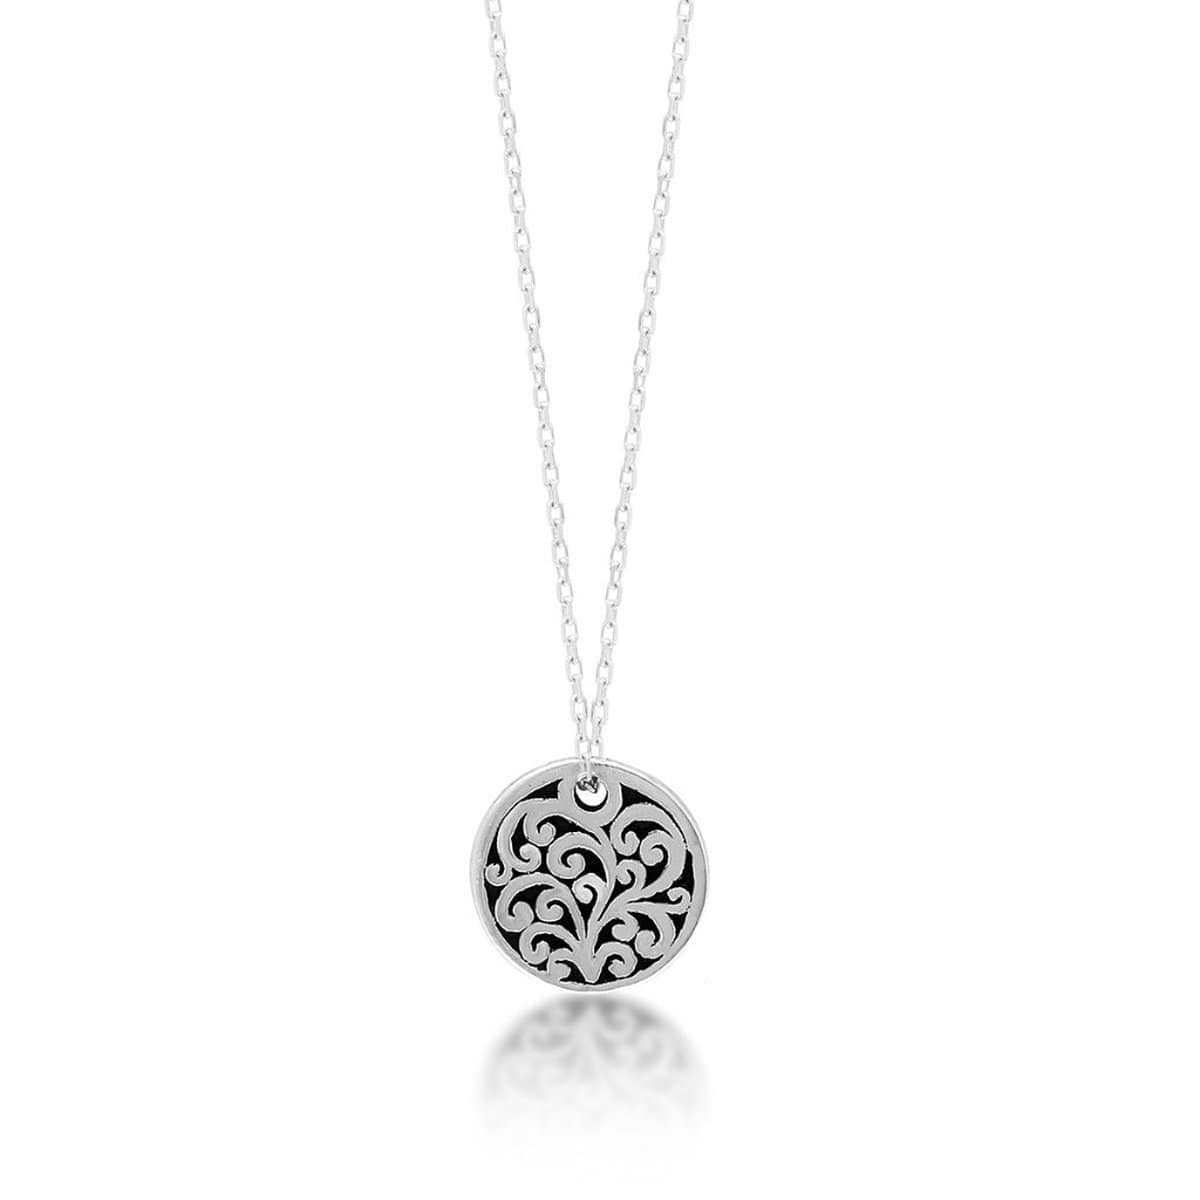 00975cda8 Lois Hill. Sterling Silver Classic Signature Scroll Small Round Pendant  Necklace - NU7062-18ADJ